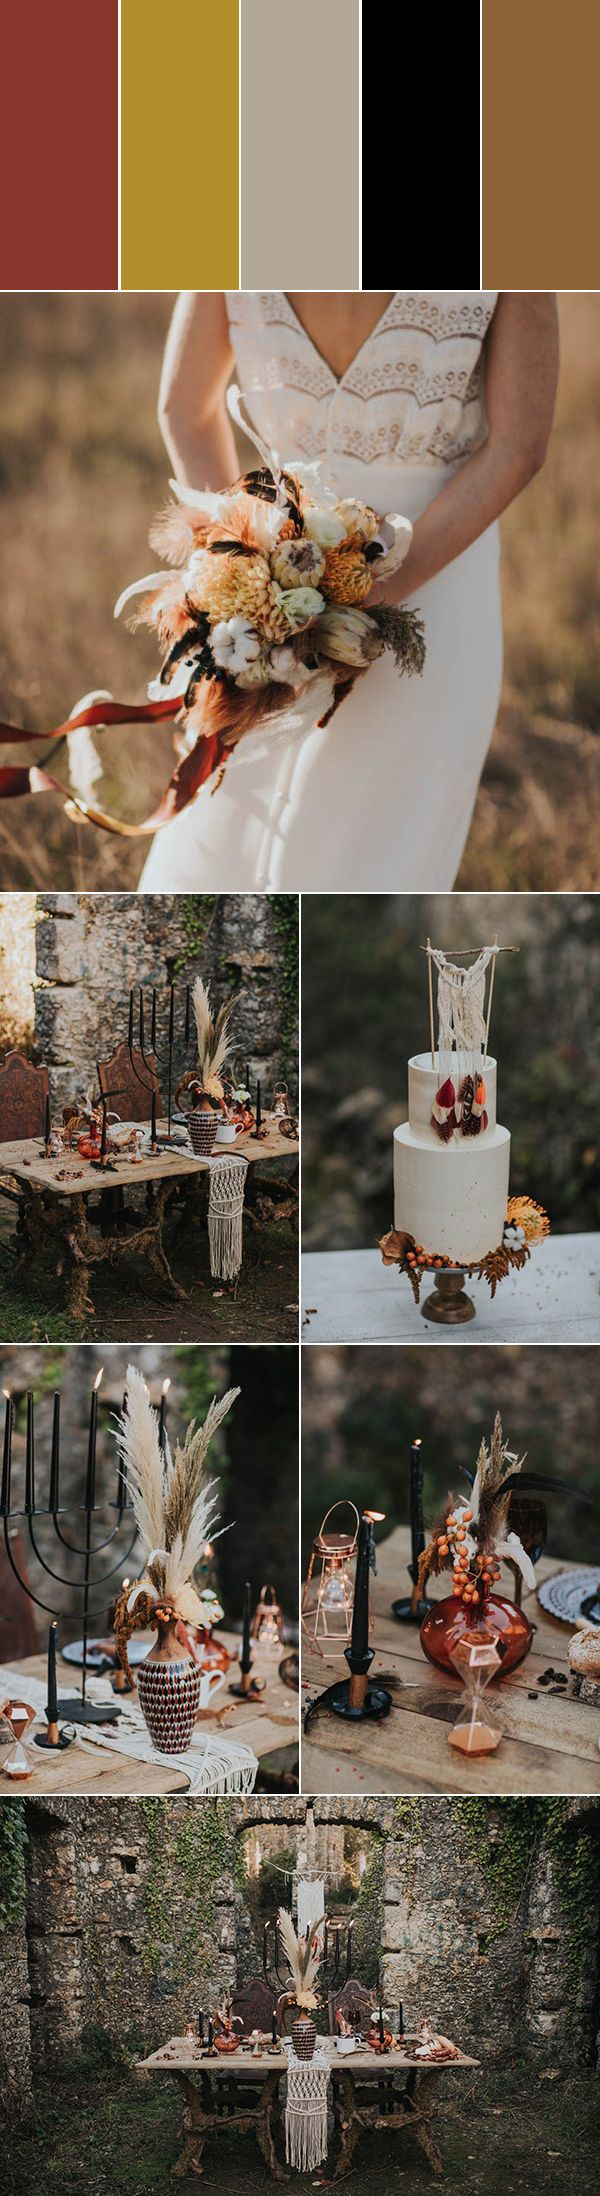 One of the best places to look for your neutral wedding color palette is in nature! Rust and amber provide just a little bit of color while still remaining firmly in neutral territory, and especially pop against shades of beige, brown, and black